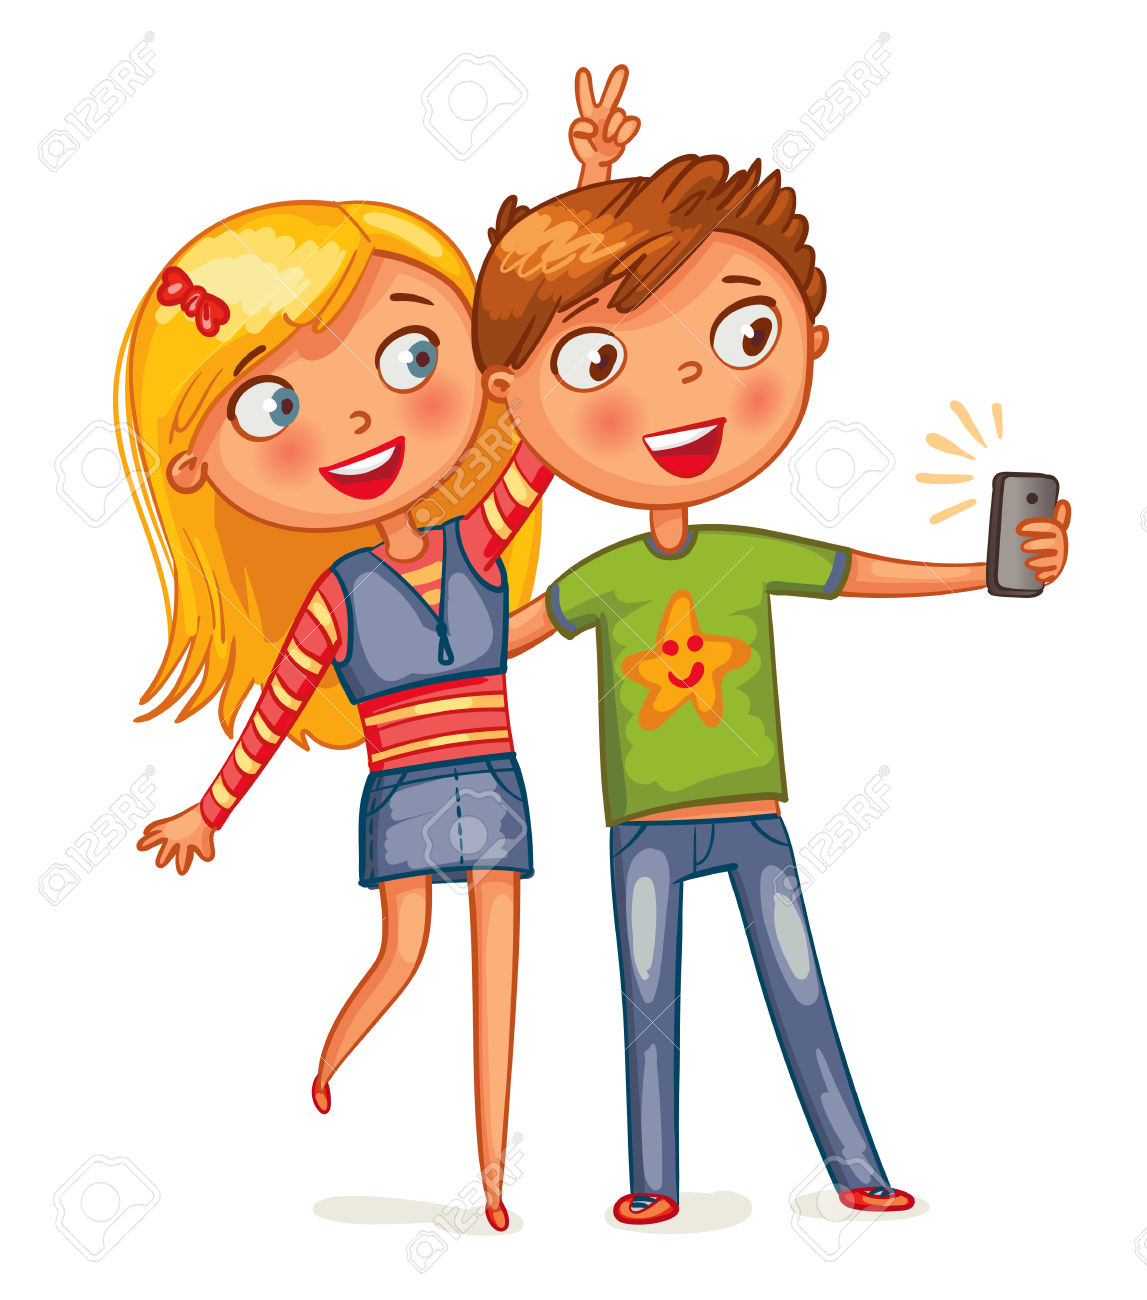 School kids character clipart picture royalty free library School kids character clipart - ClipartFest picture royalty free library